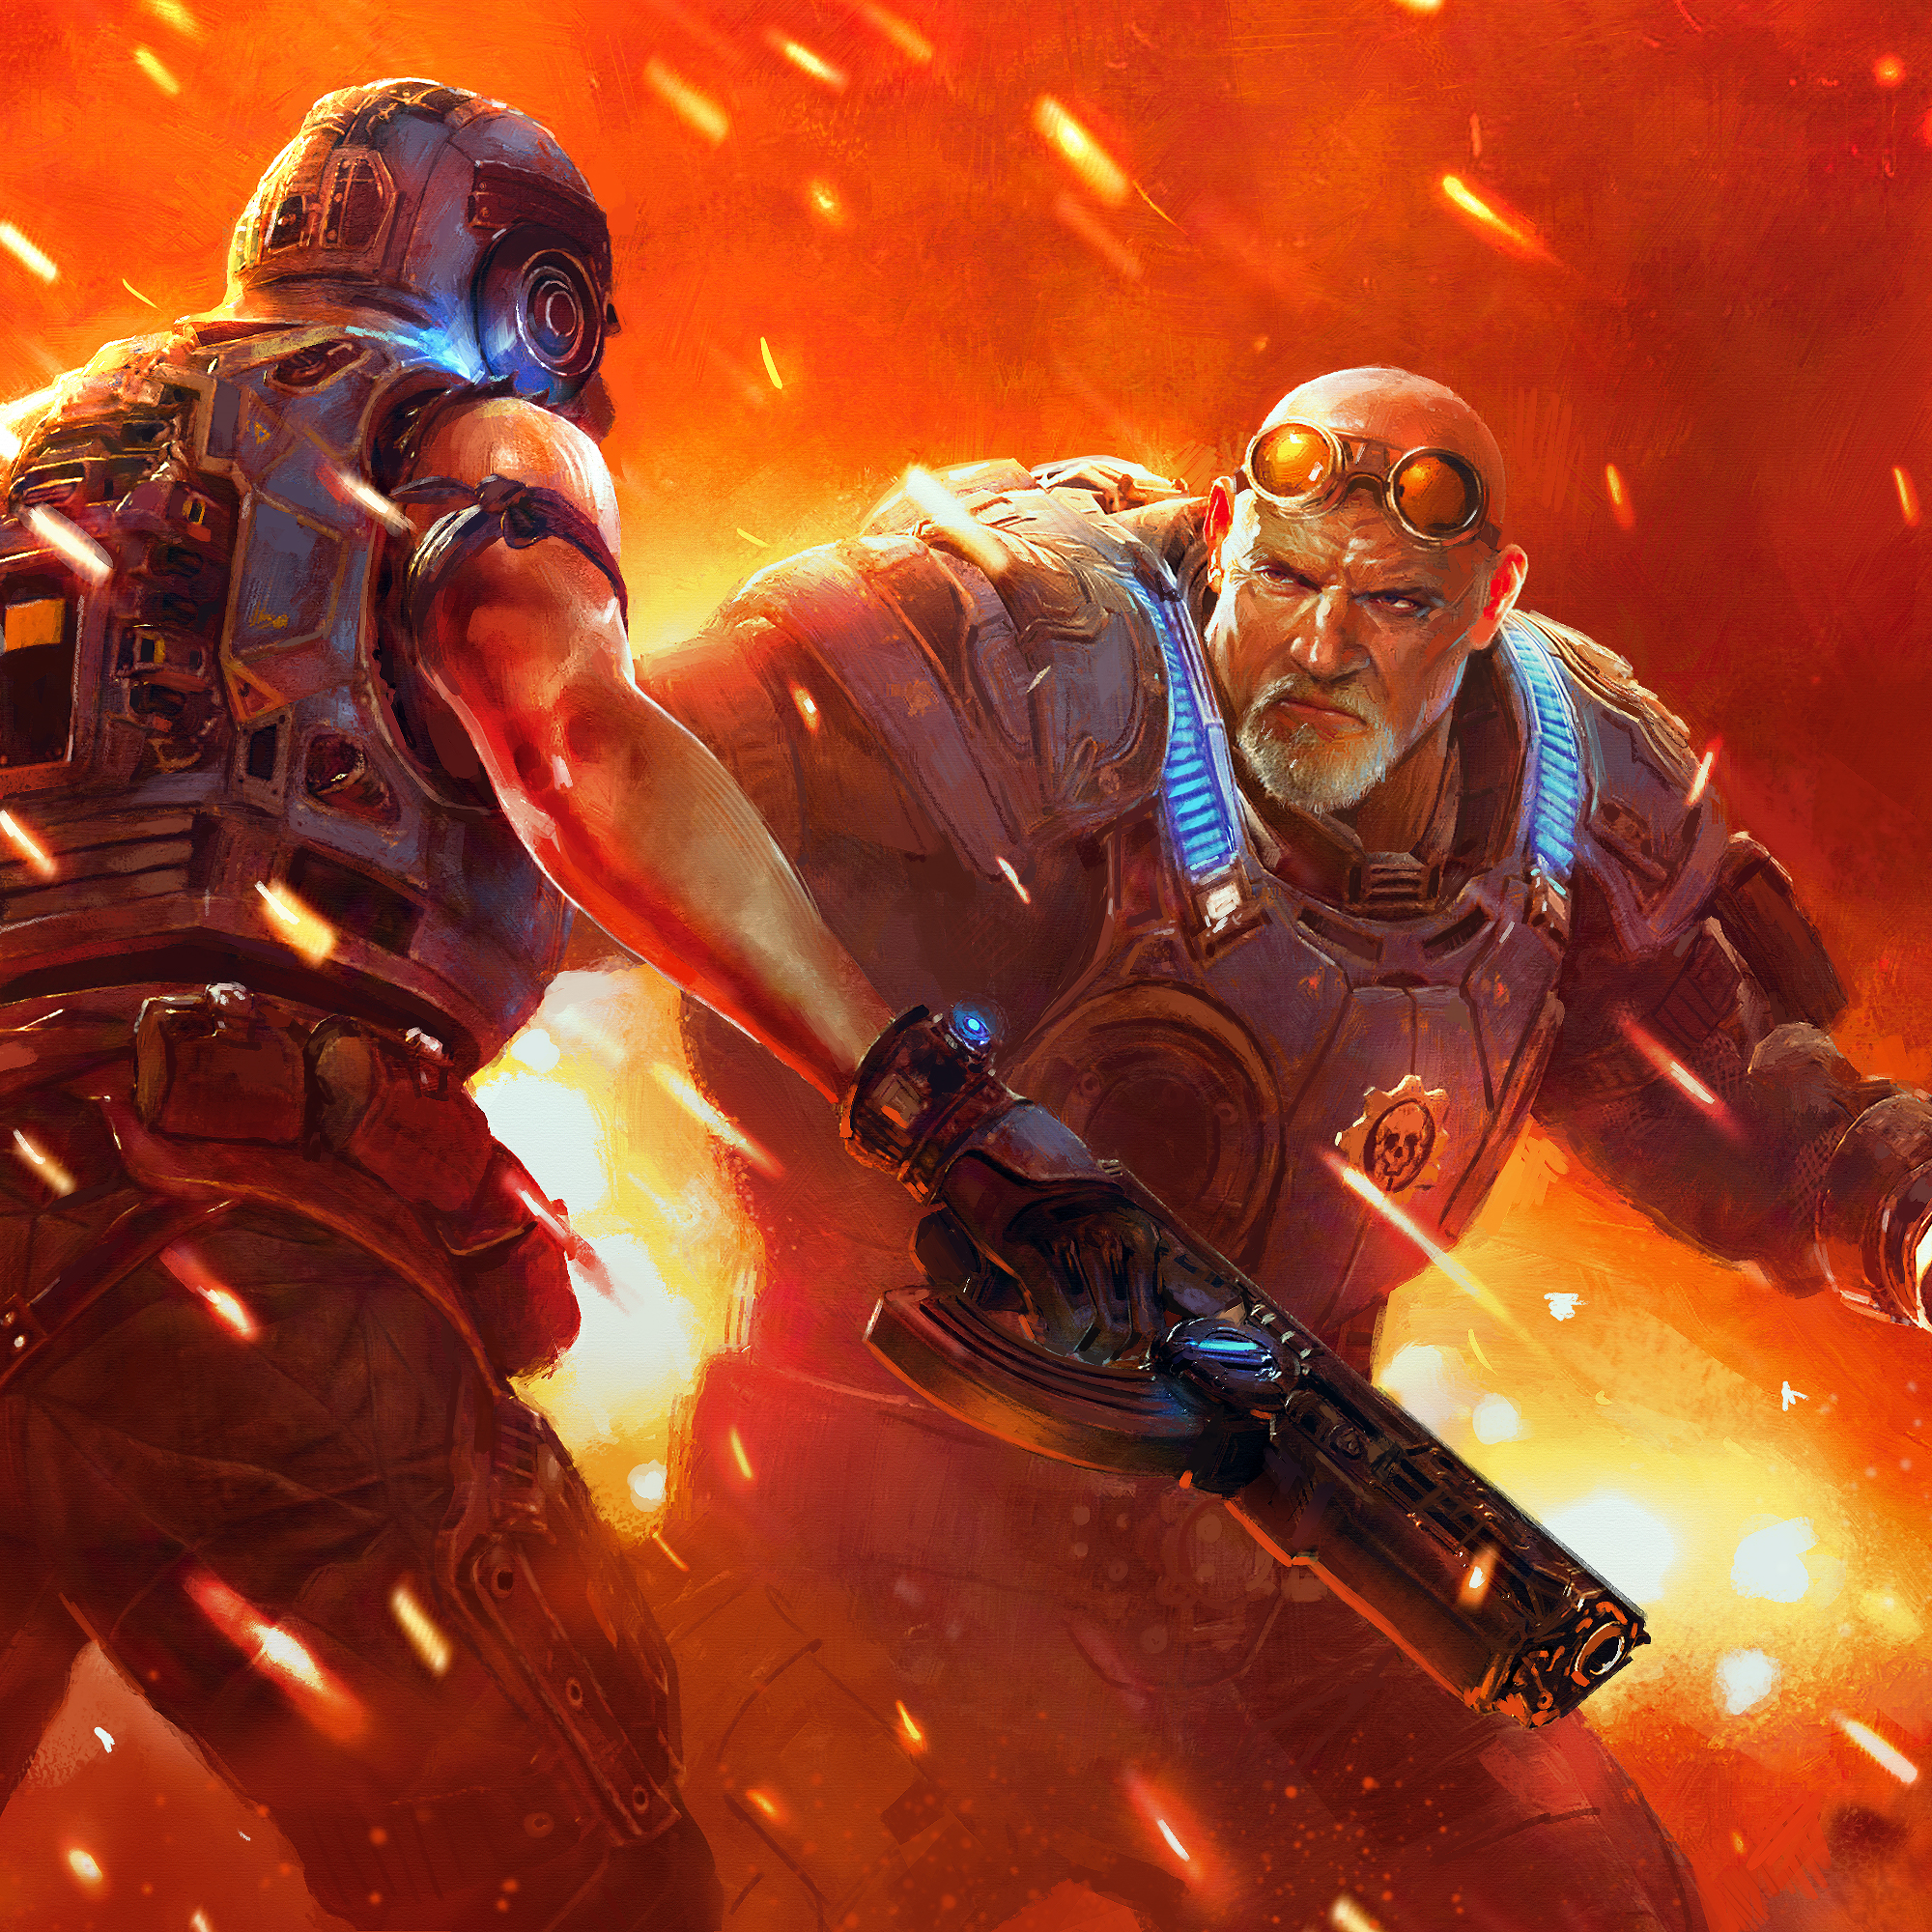 Two Gears of War characters in the heat of battle surrounded by flame-like light